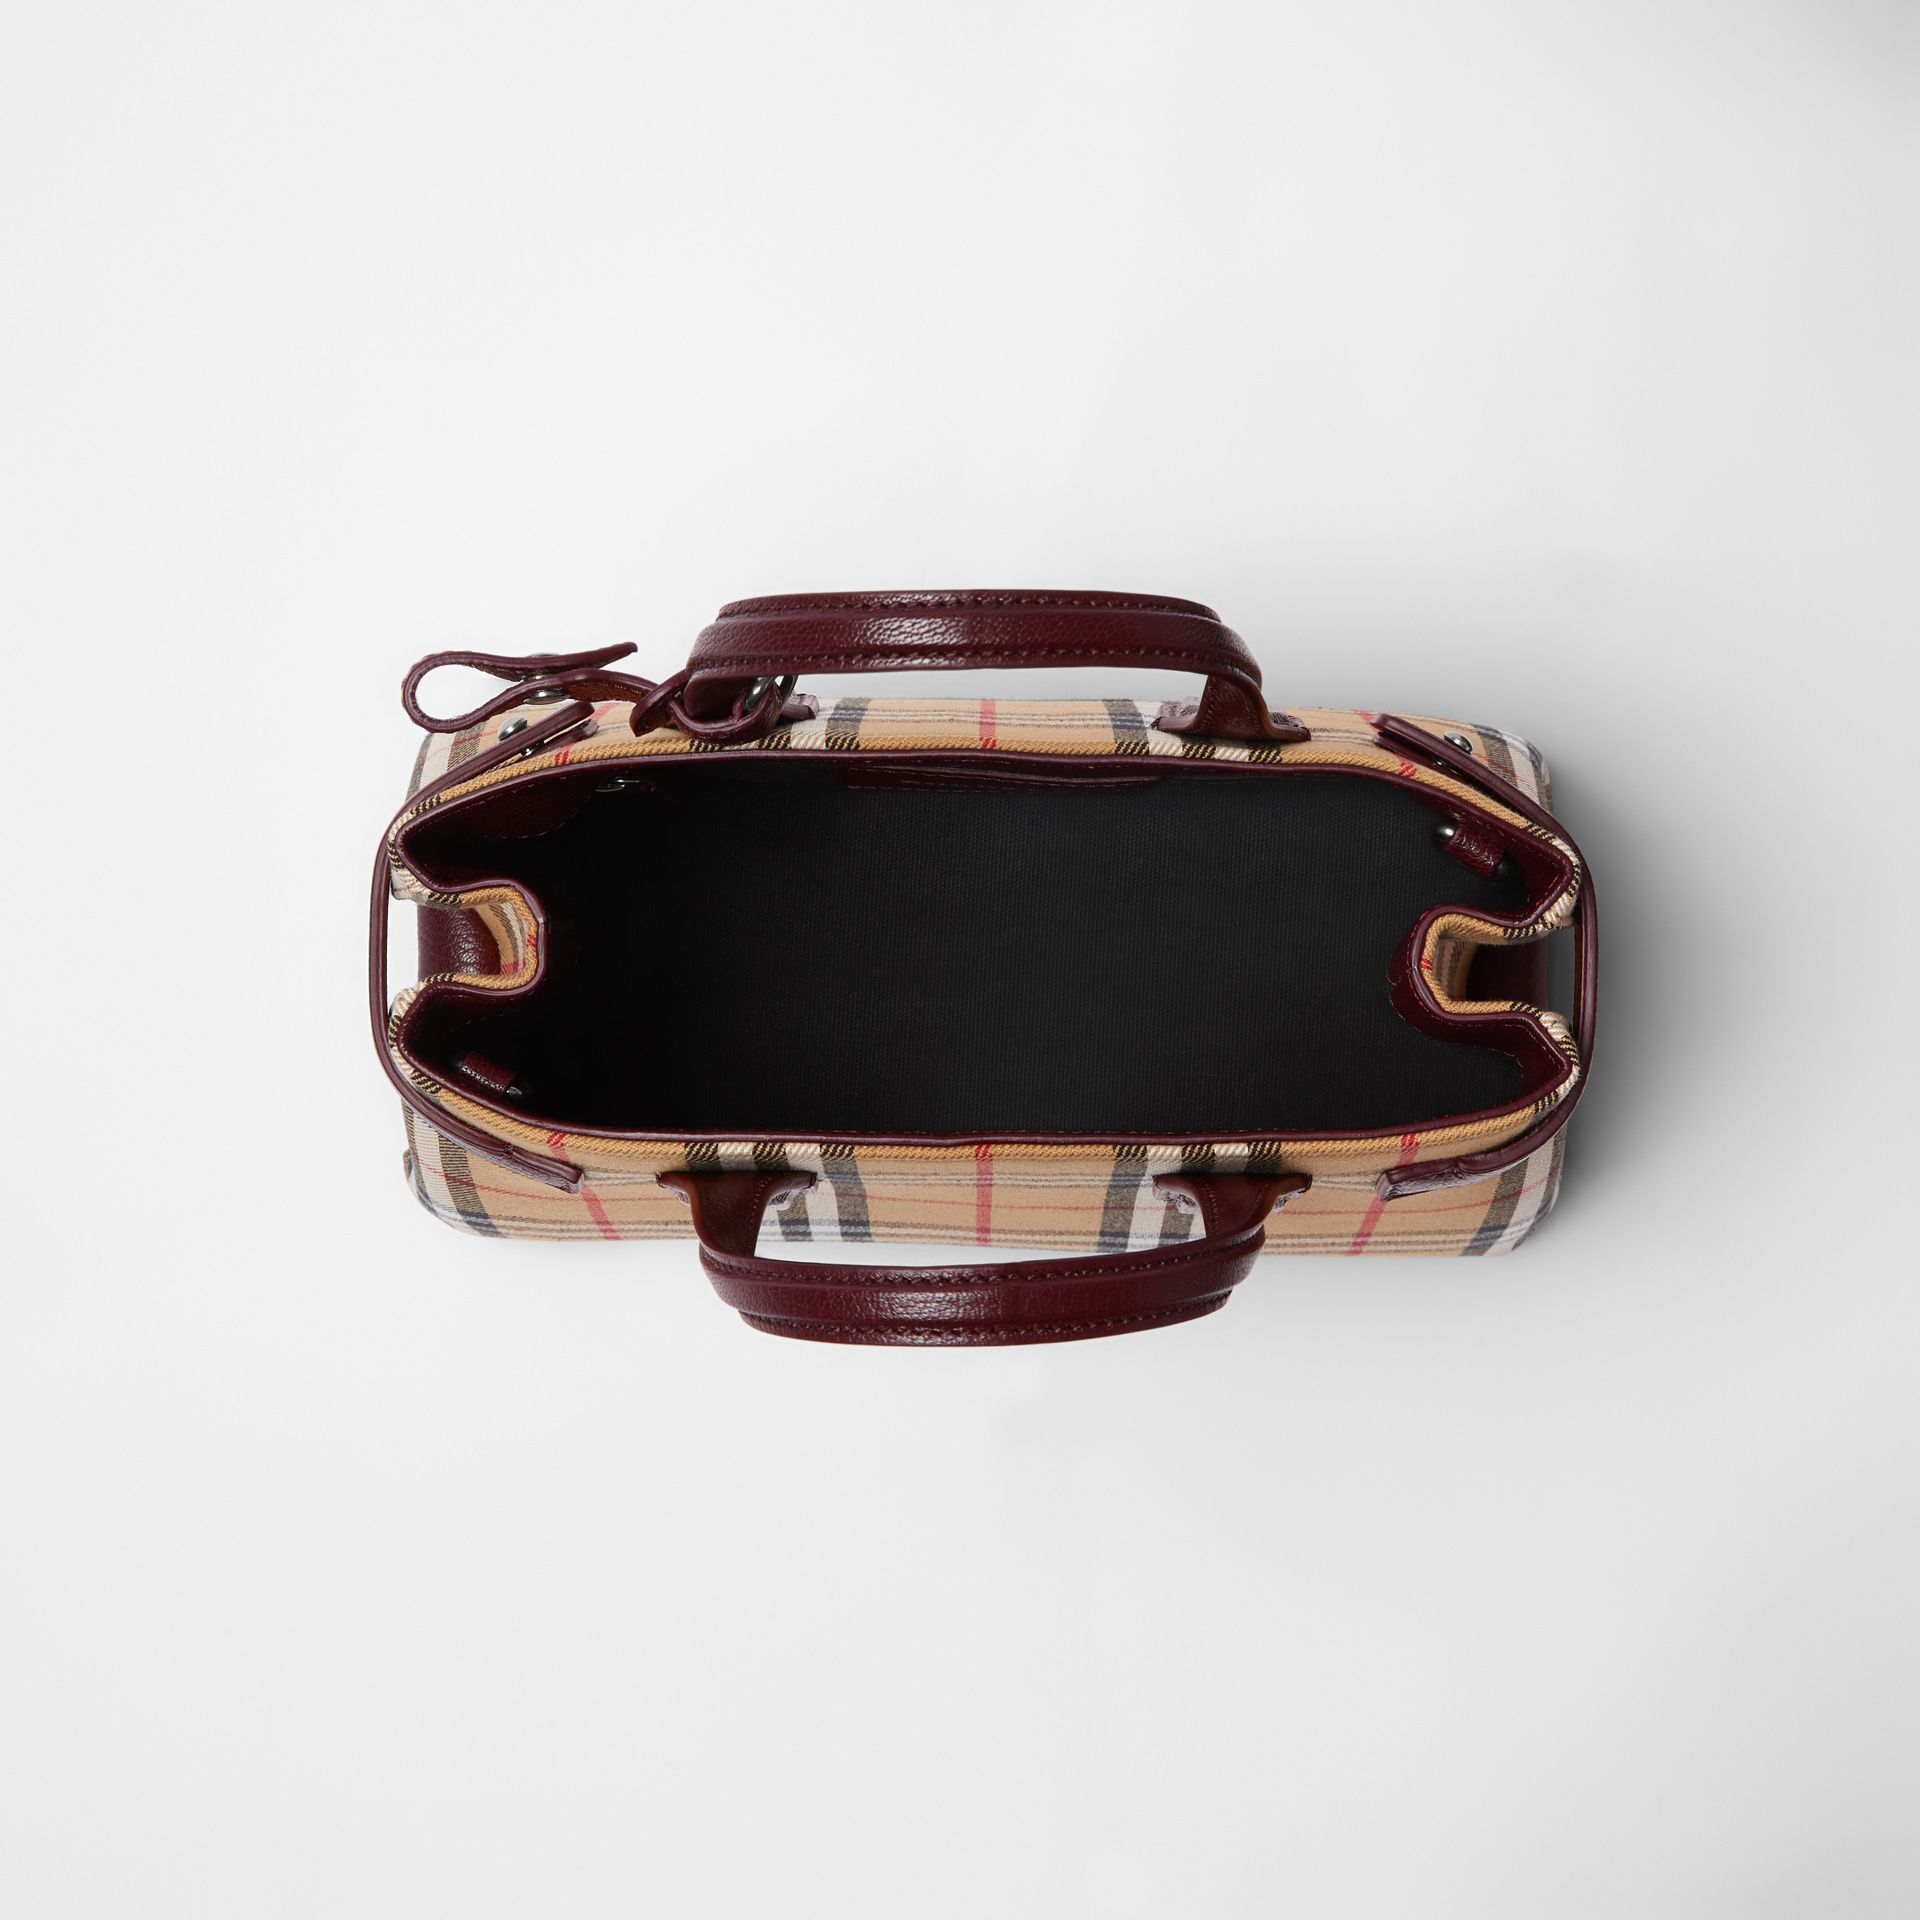 Petit sac The Banner en tissu Vintage check et cuir (Bordeaux Intense) - Femme | Burberry - photo de la galerie 5